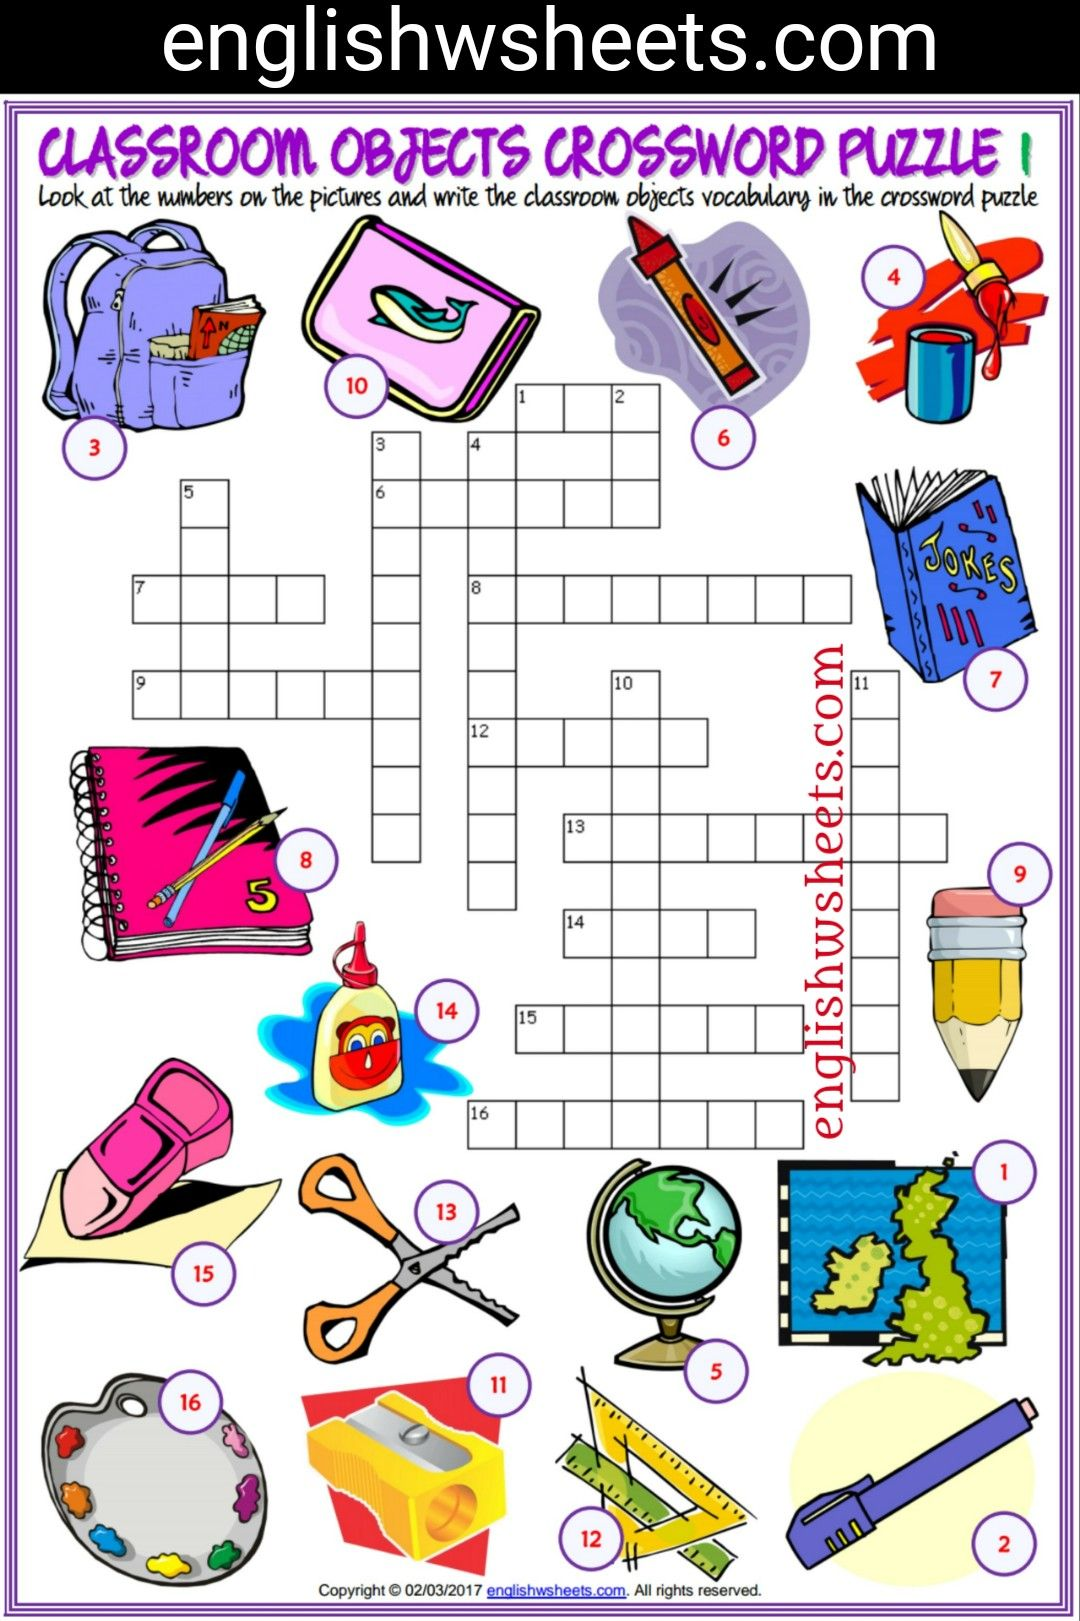 classroom objects esl printable crossword puzzle worksheets for kids classroom objects esl. Black Bedroom Furniture Sets. Home Design Ideas